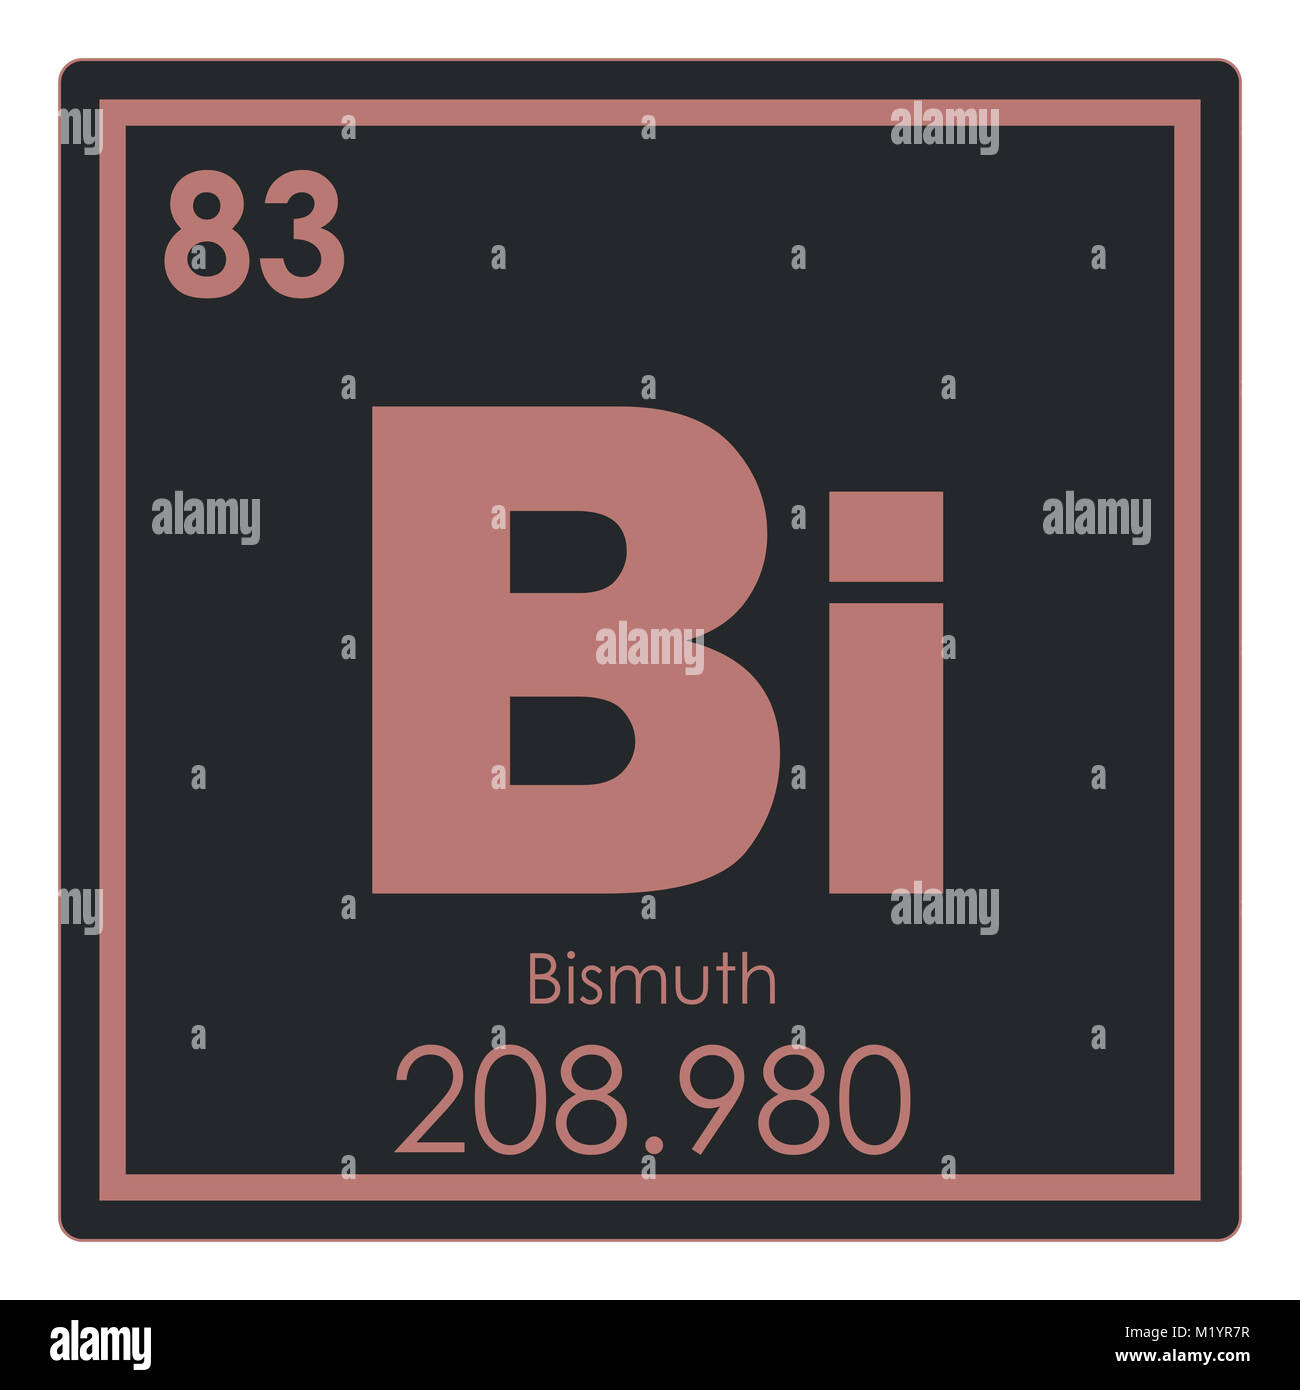 Bismuth chemical element periodic table science symbol stock photo bismuth chemical element periodic table science symbol buycottarizona